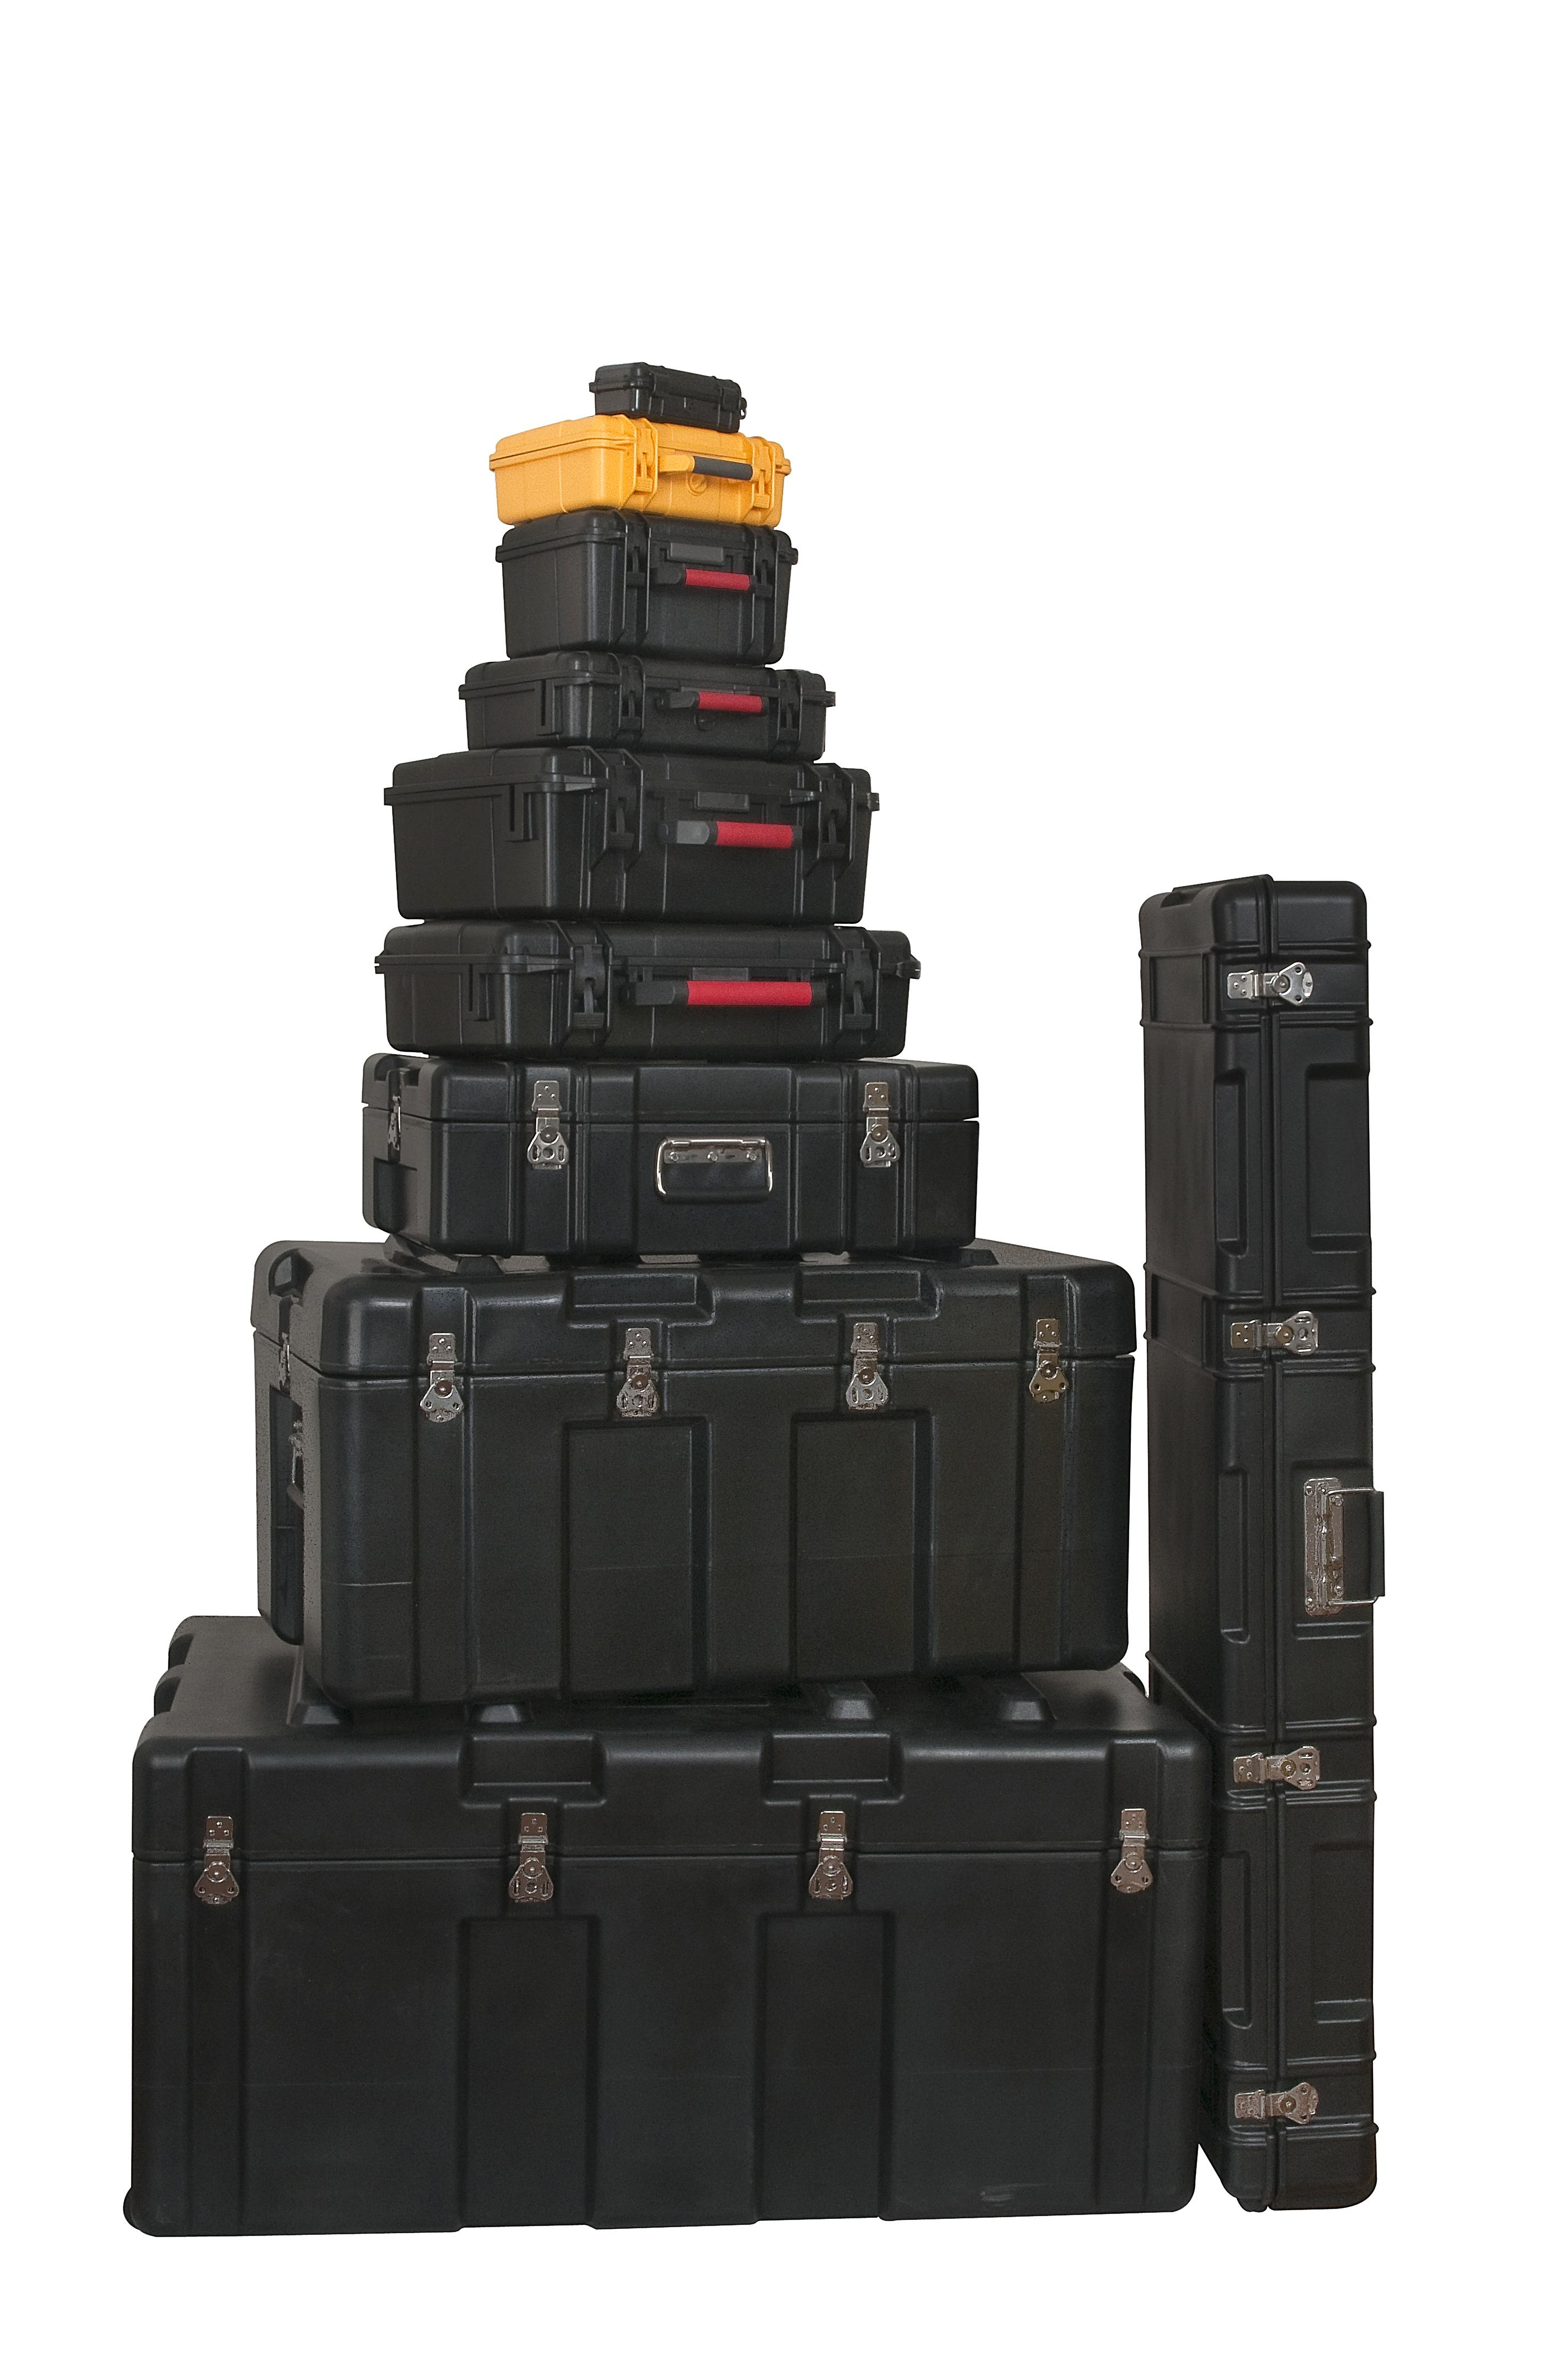 tough box Our range of tough box space cases provide outdoor enthusiasts with a reliable means of keeping supplies safe and secure while 4wd, camping and adventuring in australia.